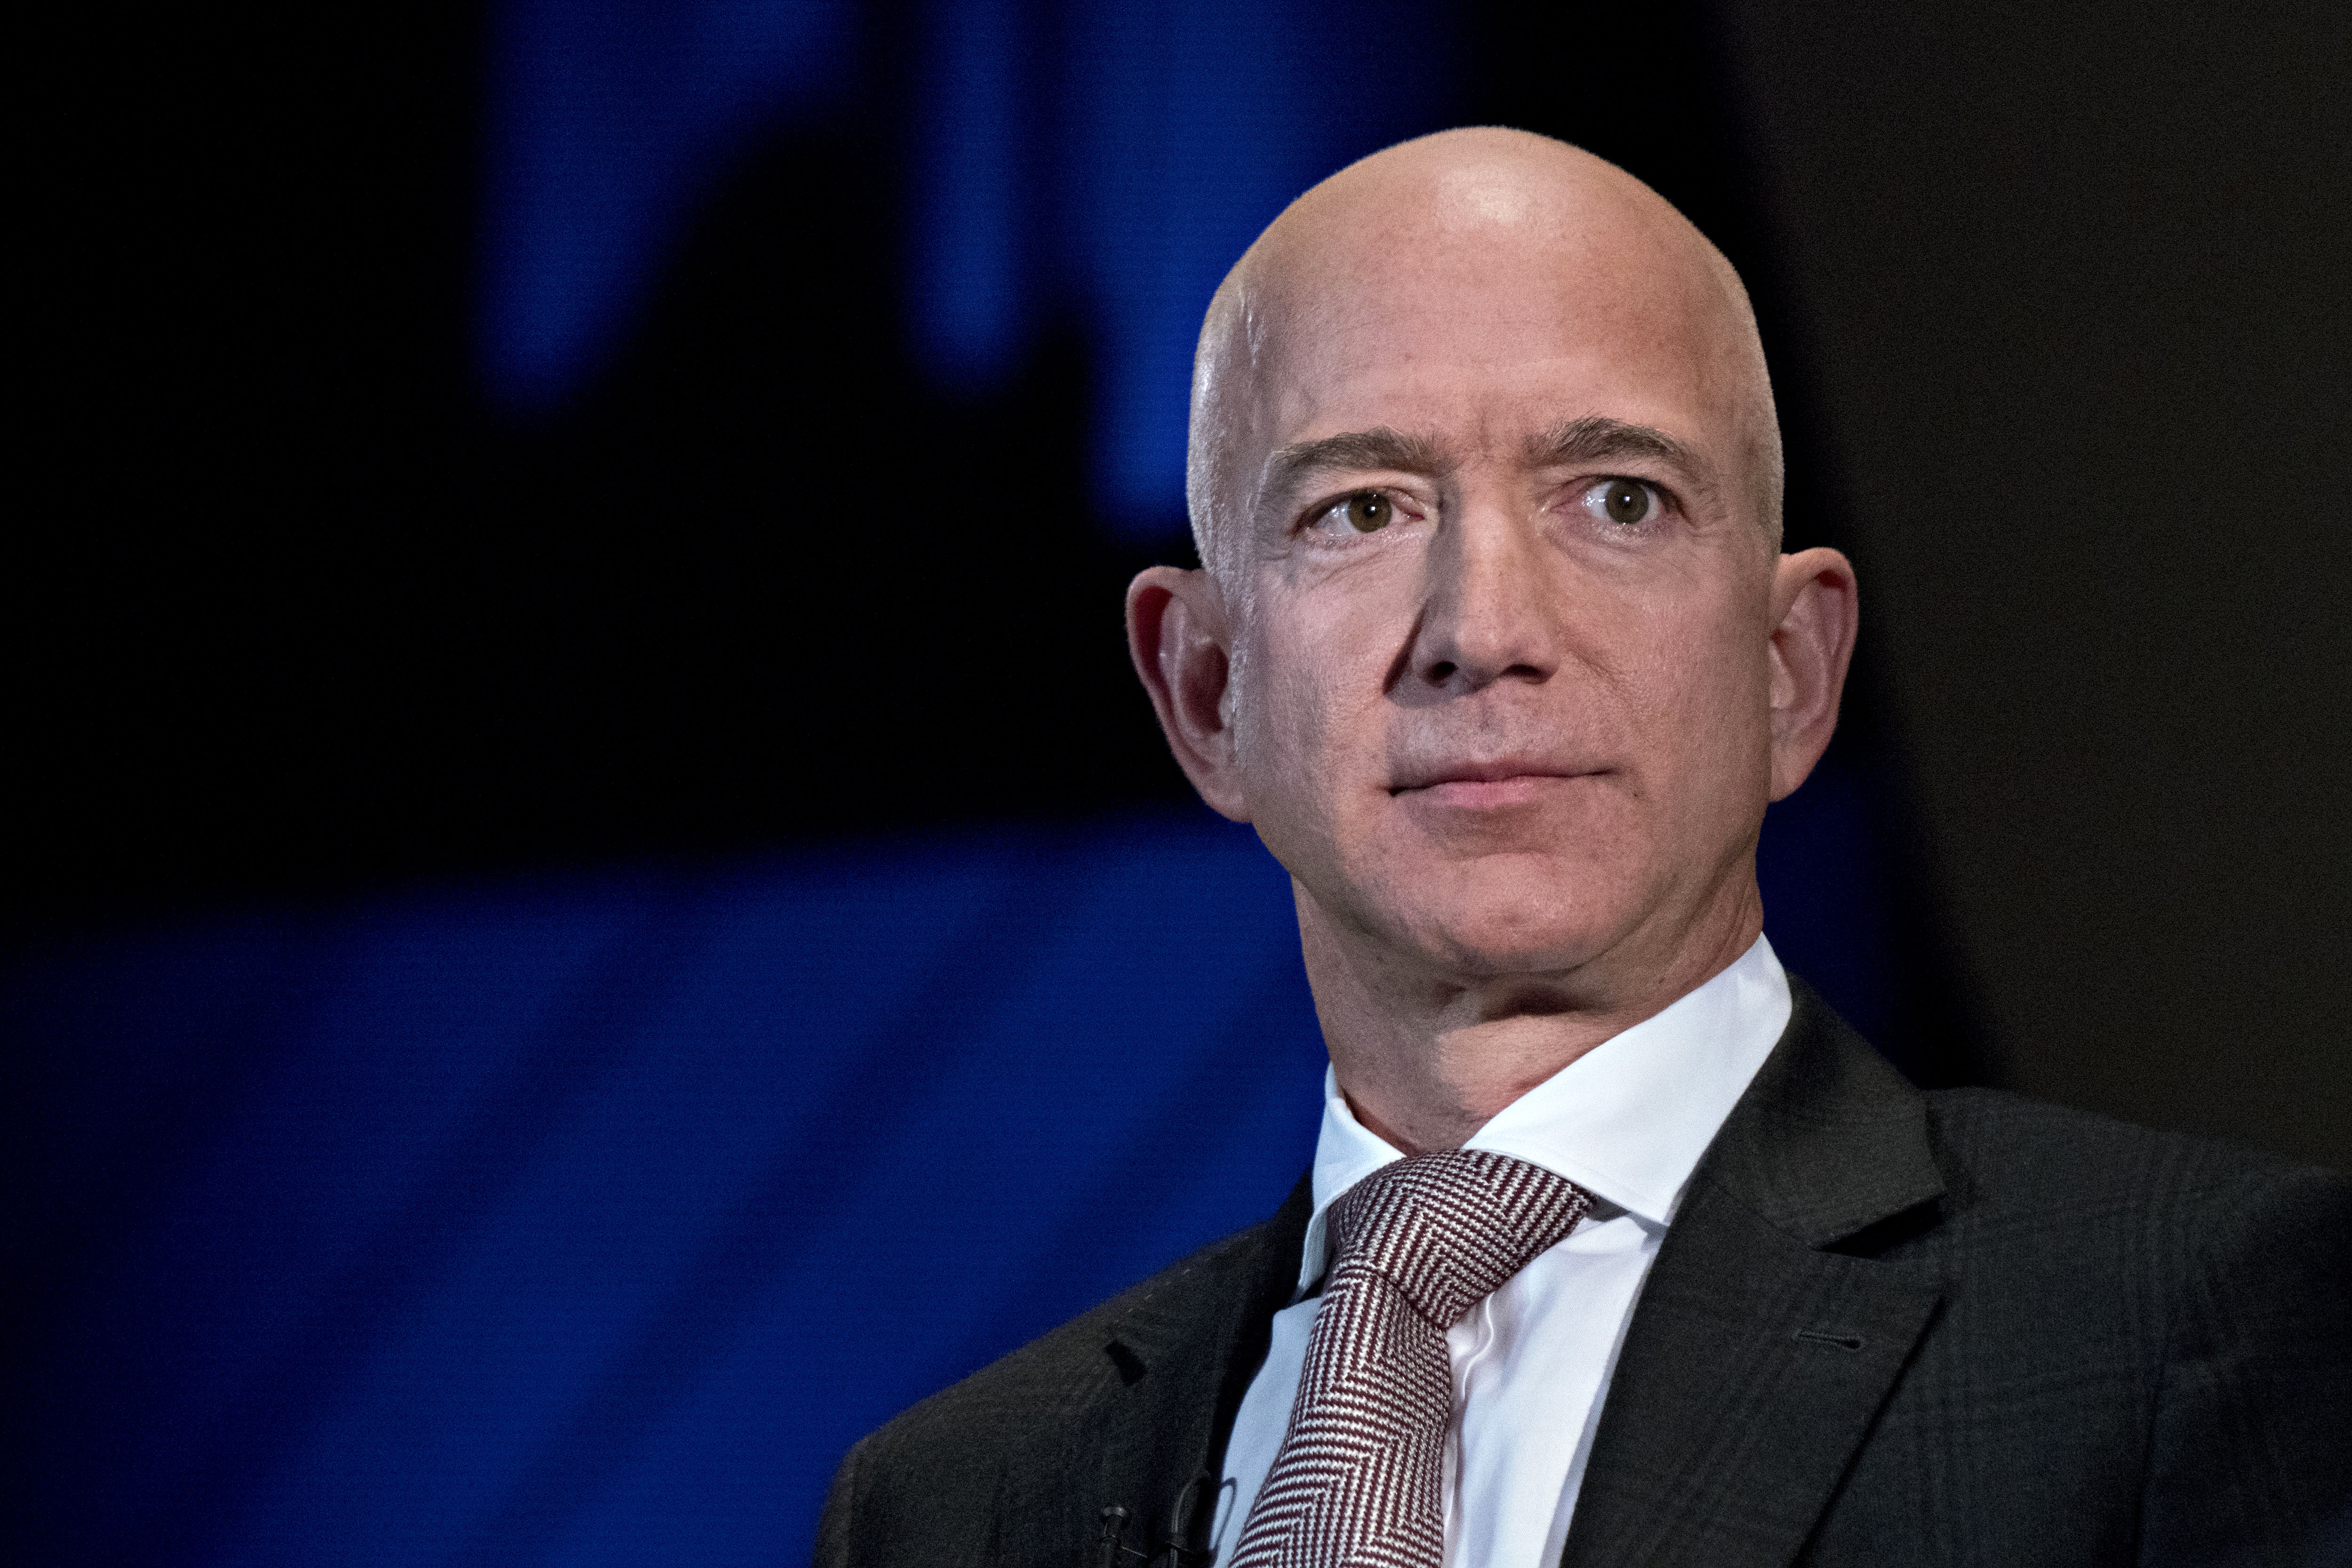 Jeff Bezos is so rich he just set a new record